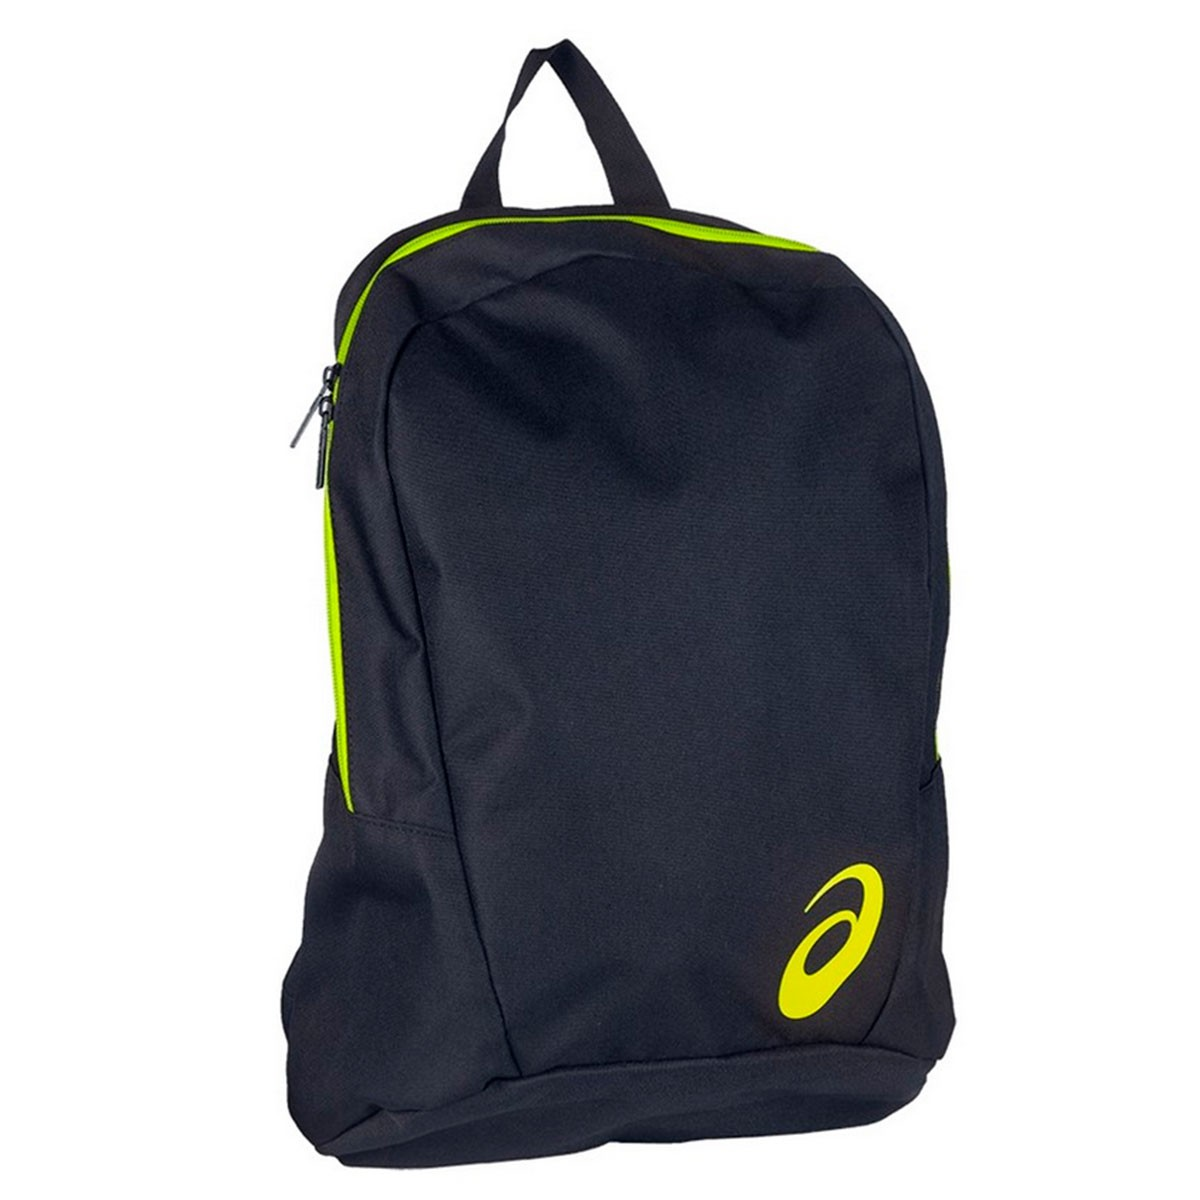 Mochila Asics Basic Backpack - Preto